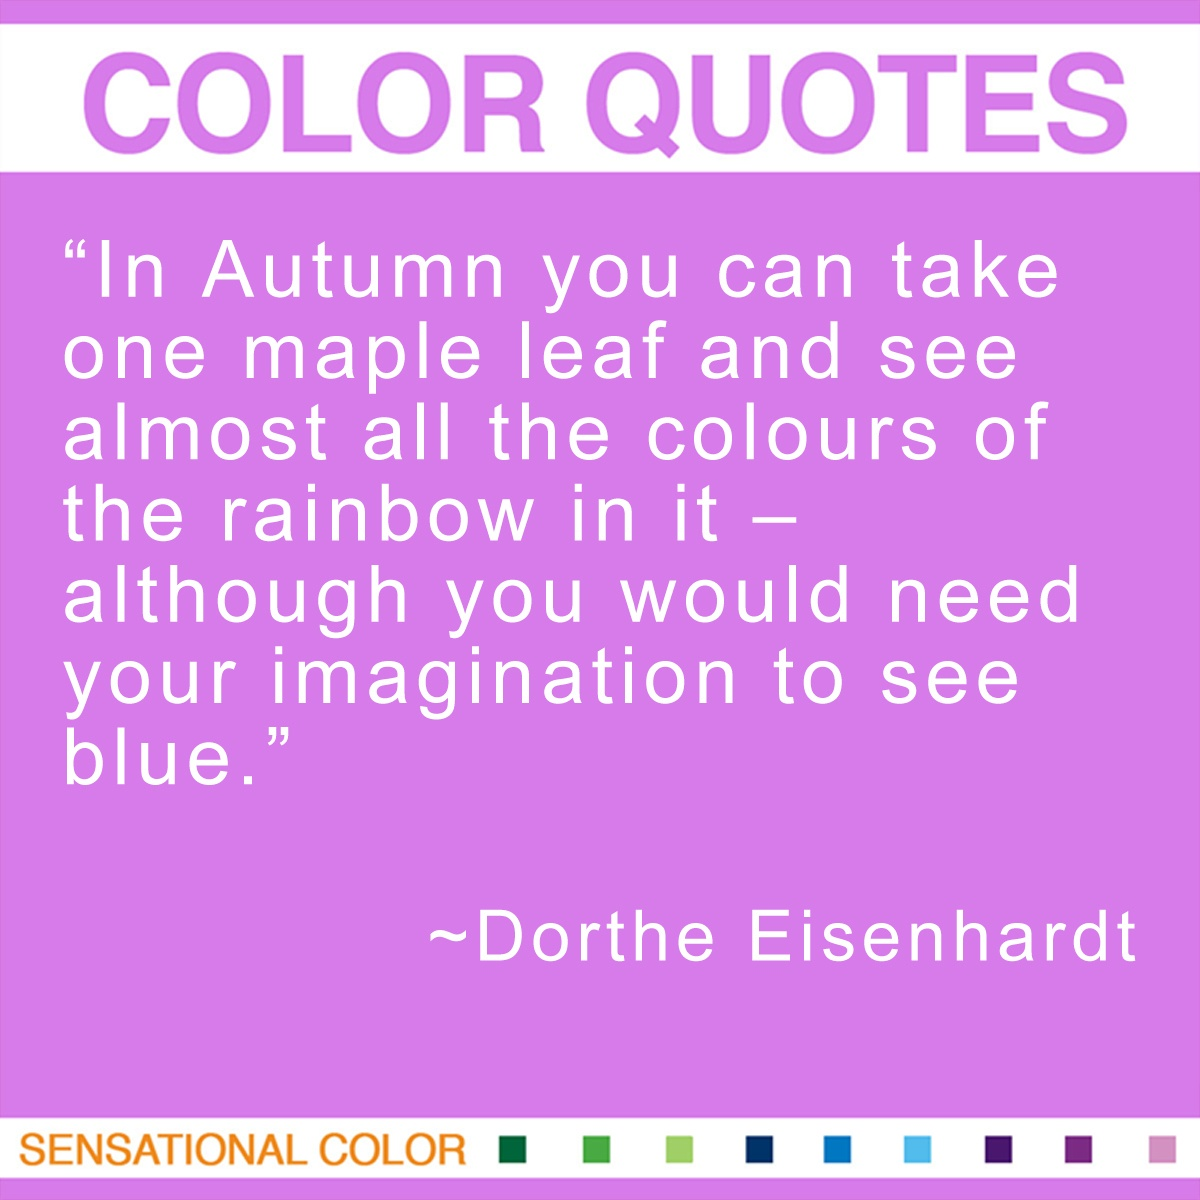 """In Autumn you can take one maple leaf and see almost all the colours of the rainbow in it – although you would need your imagination to see blue."" - Dorthe Eisenhardt"